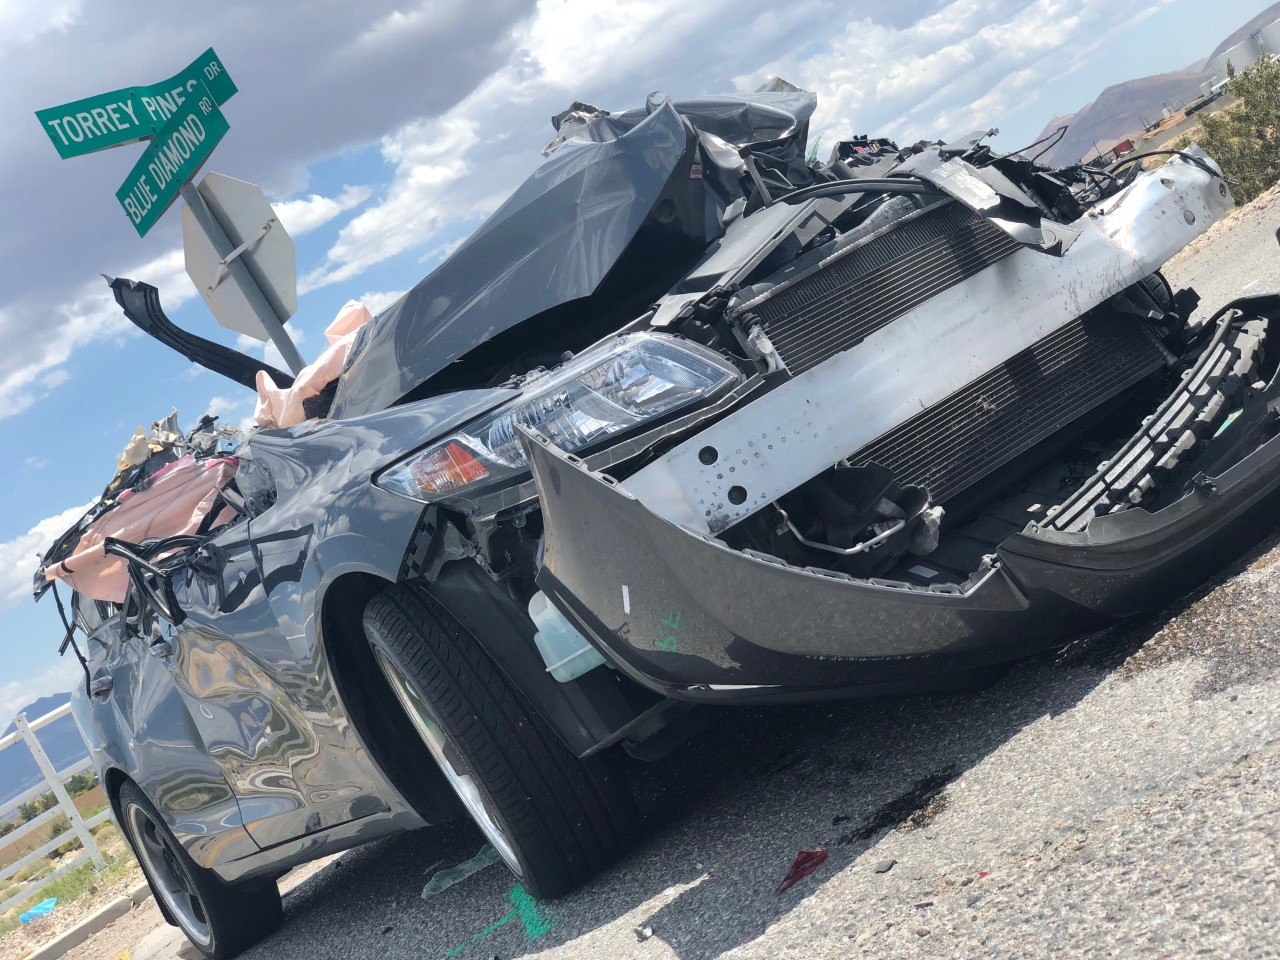 CORRECTION: No one died in major crash at Blue Diamond